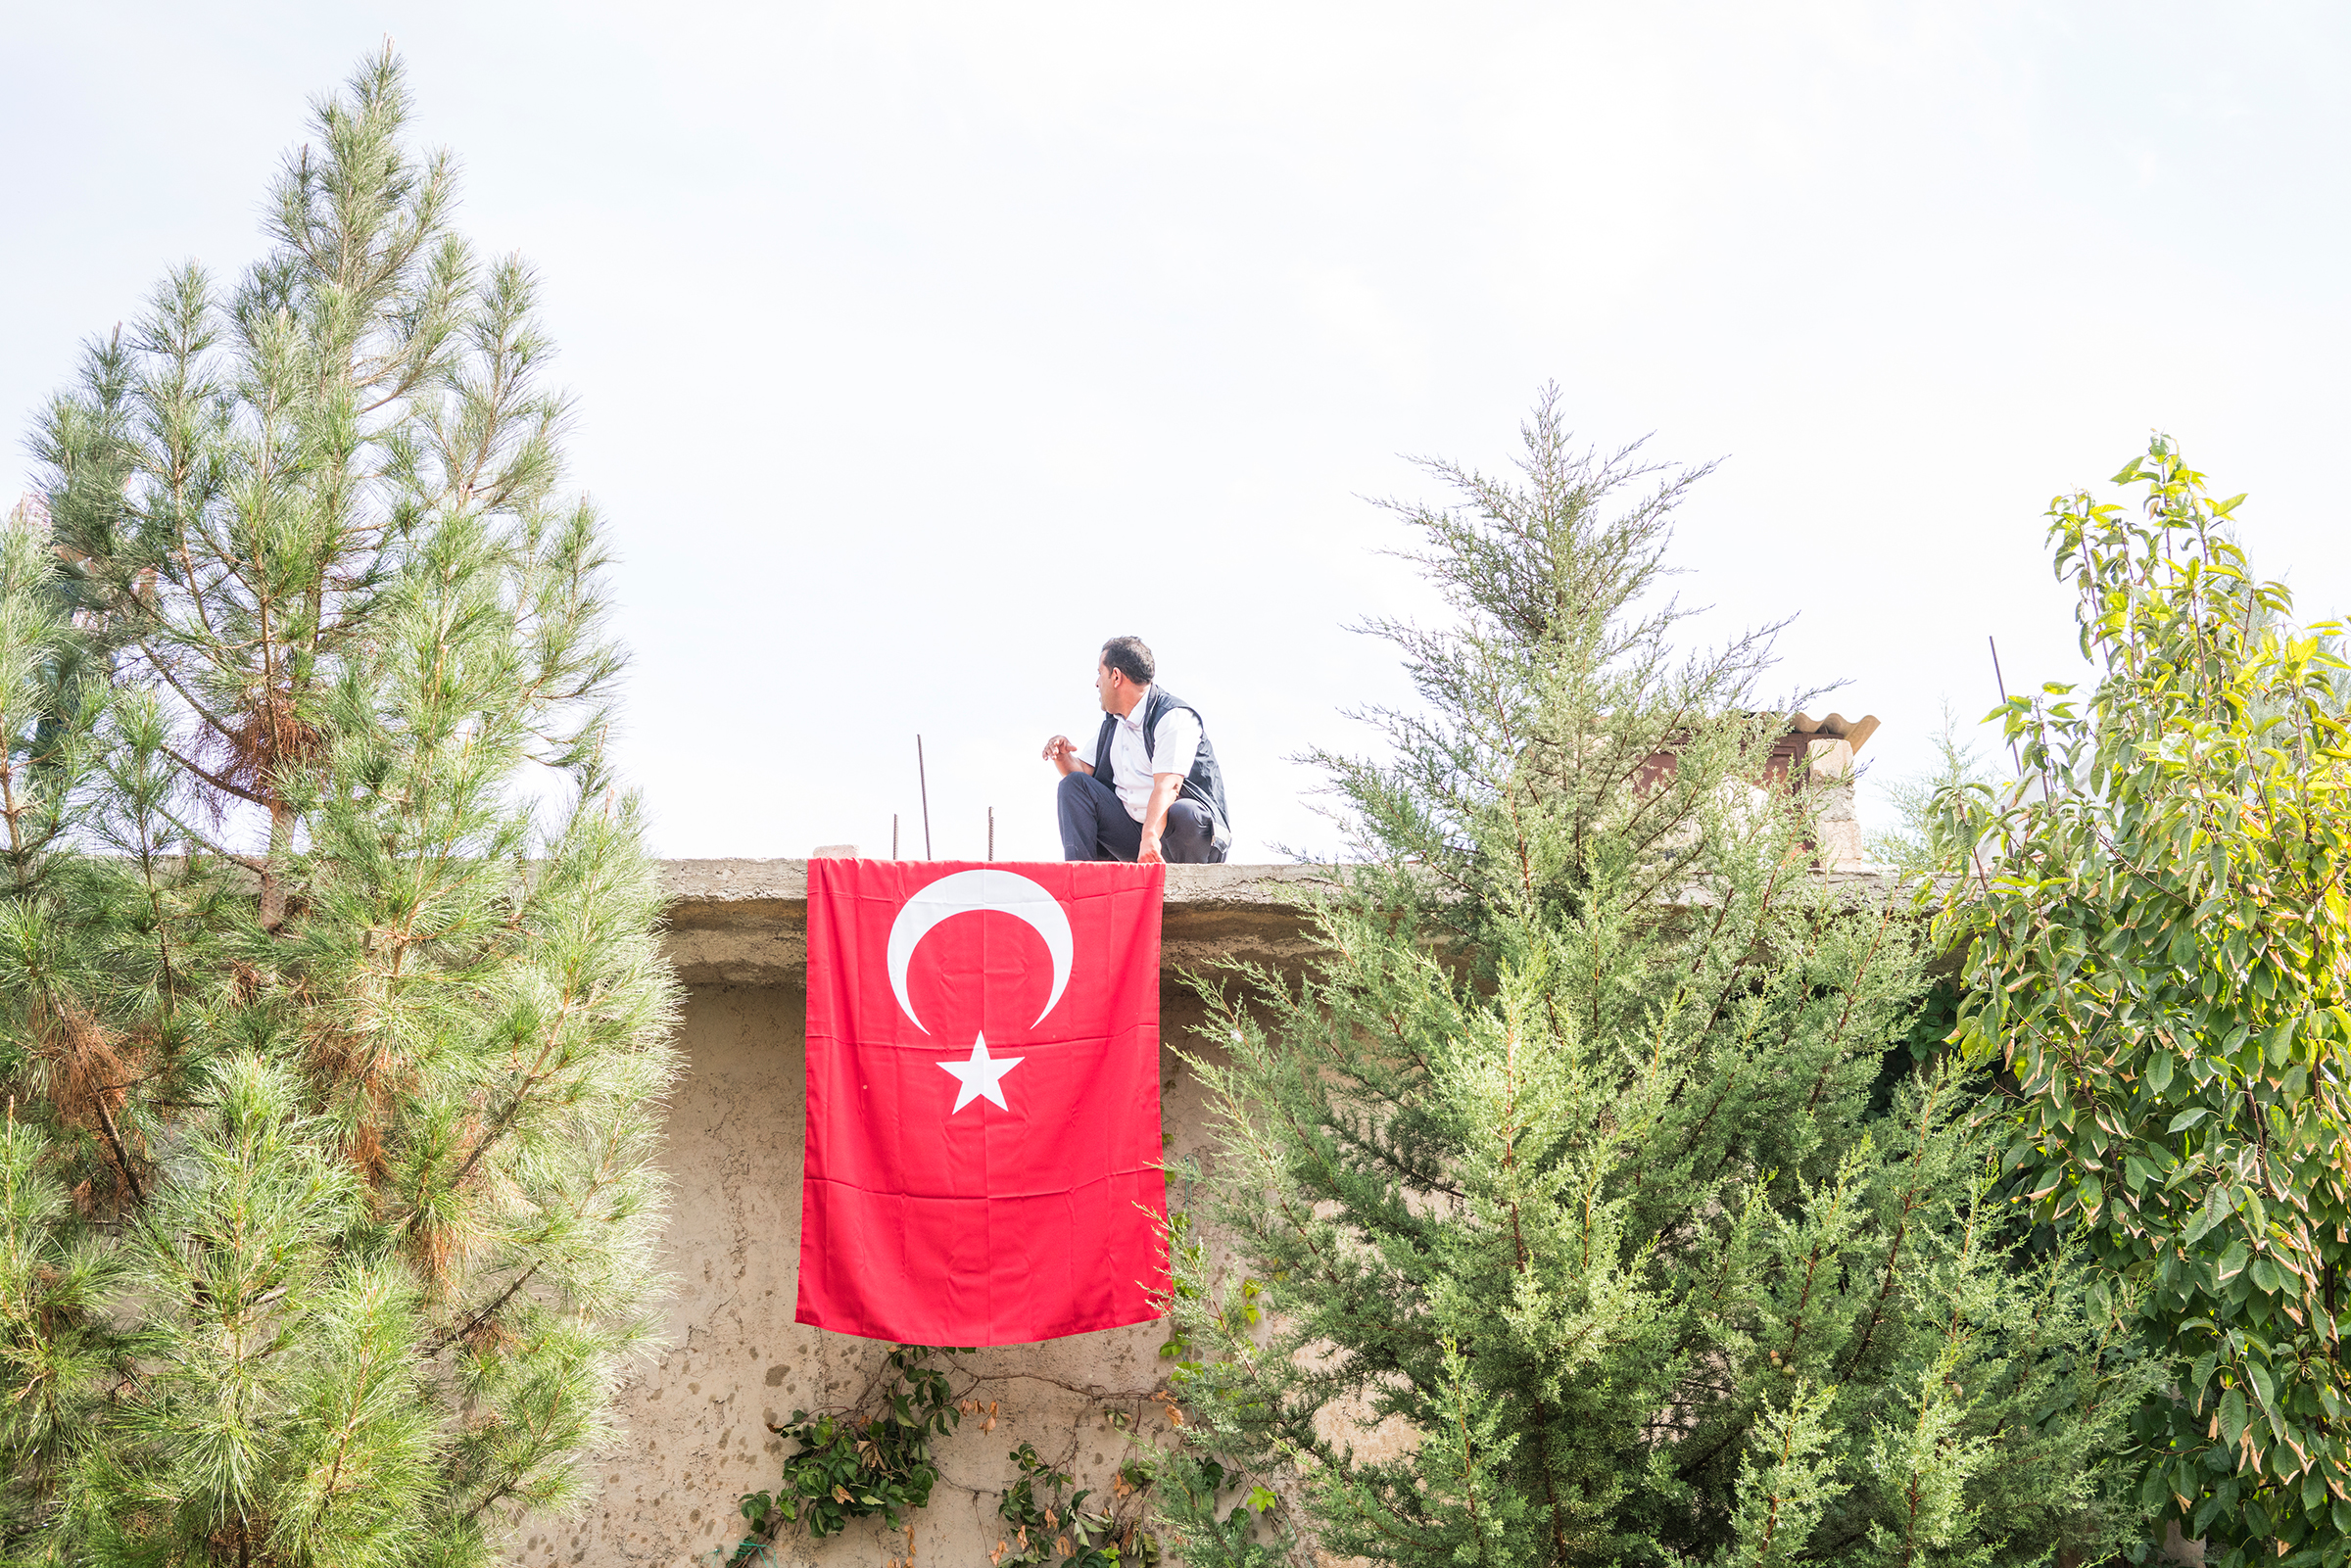 A man places a Turkish flag in the courtyard of a mosque before the funeral of a nine-month-old Syrian baby, who was killed during rocket and mortar attacks in Akçakale, Turkey, on Oct. 11, 2019.